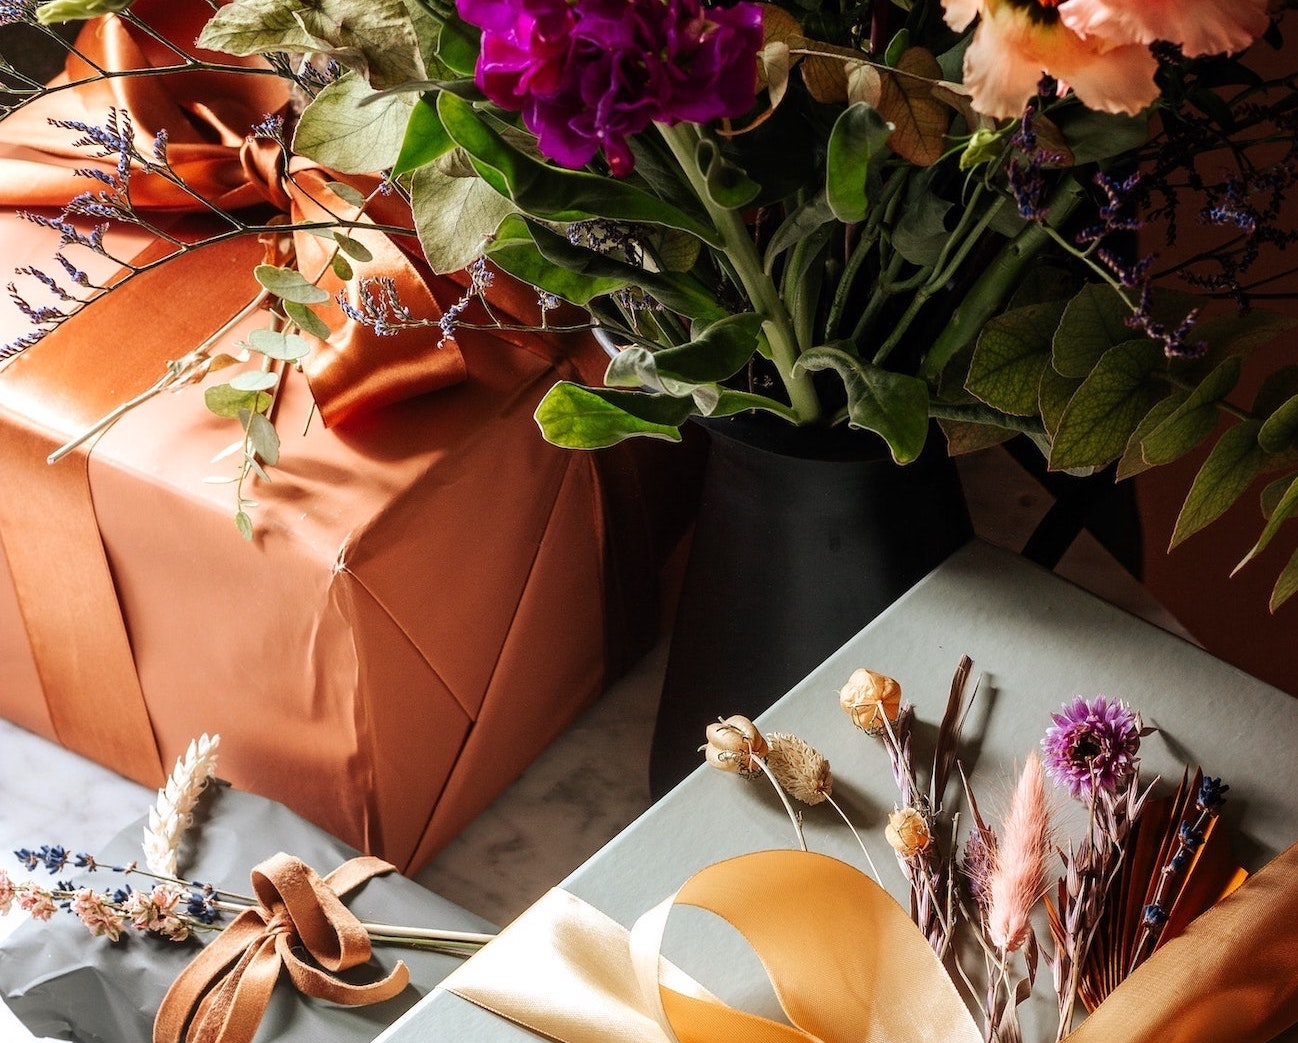 Wrapped gift next to flowers